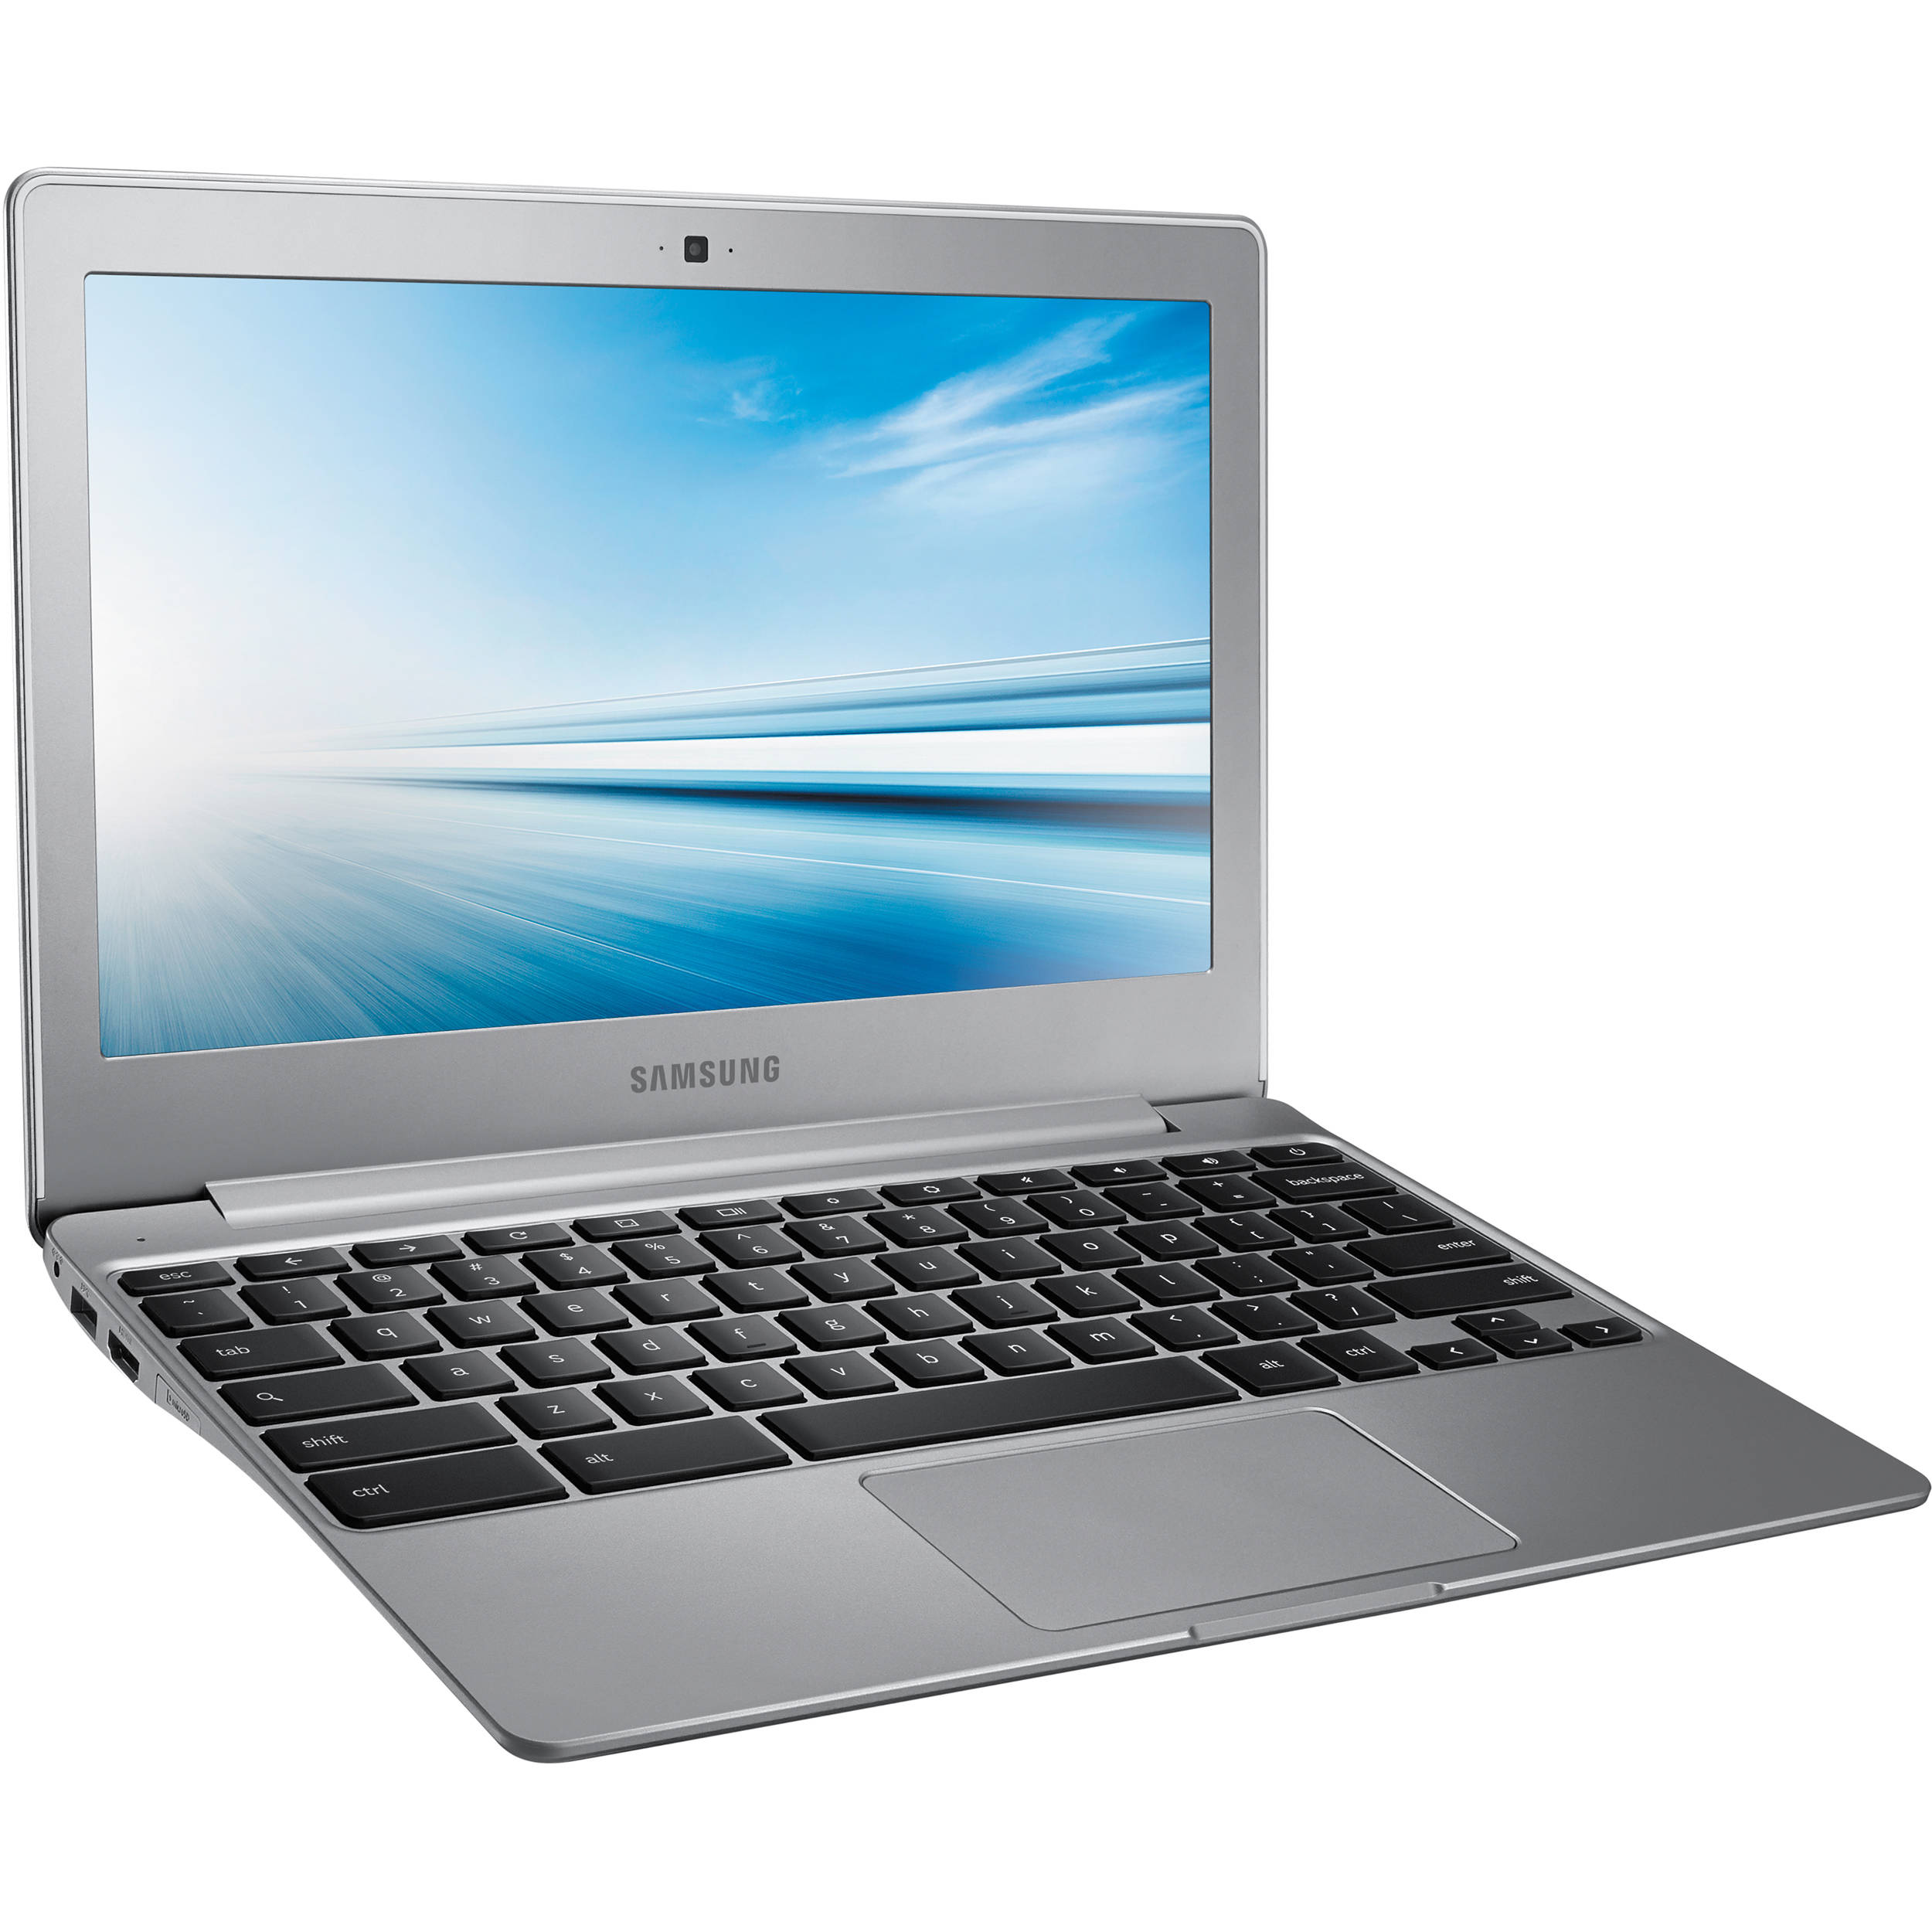 samsung notebook m 11.6 review